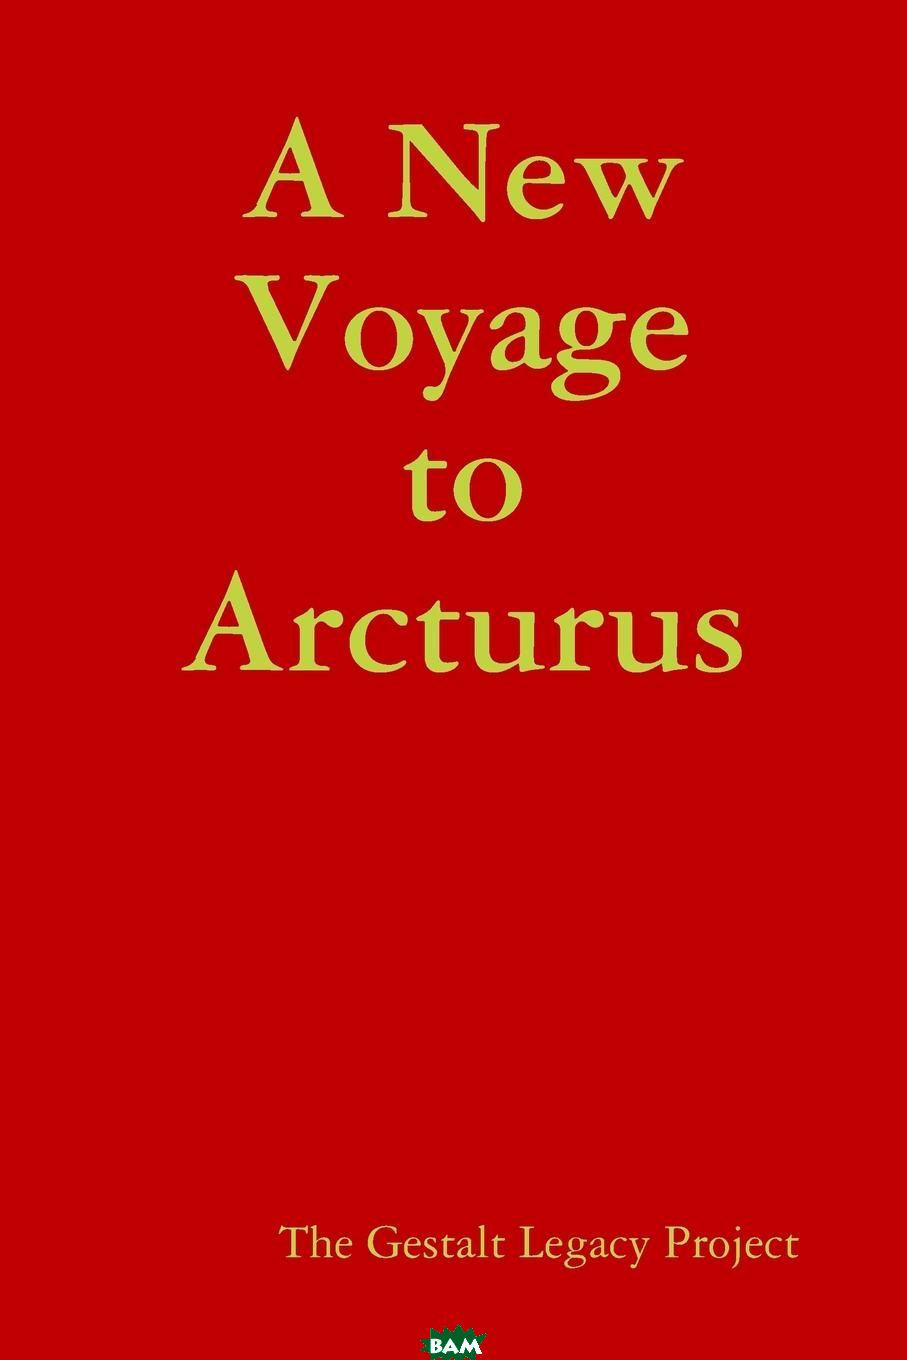 A New Voyage to Arcturus